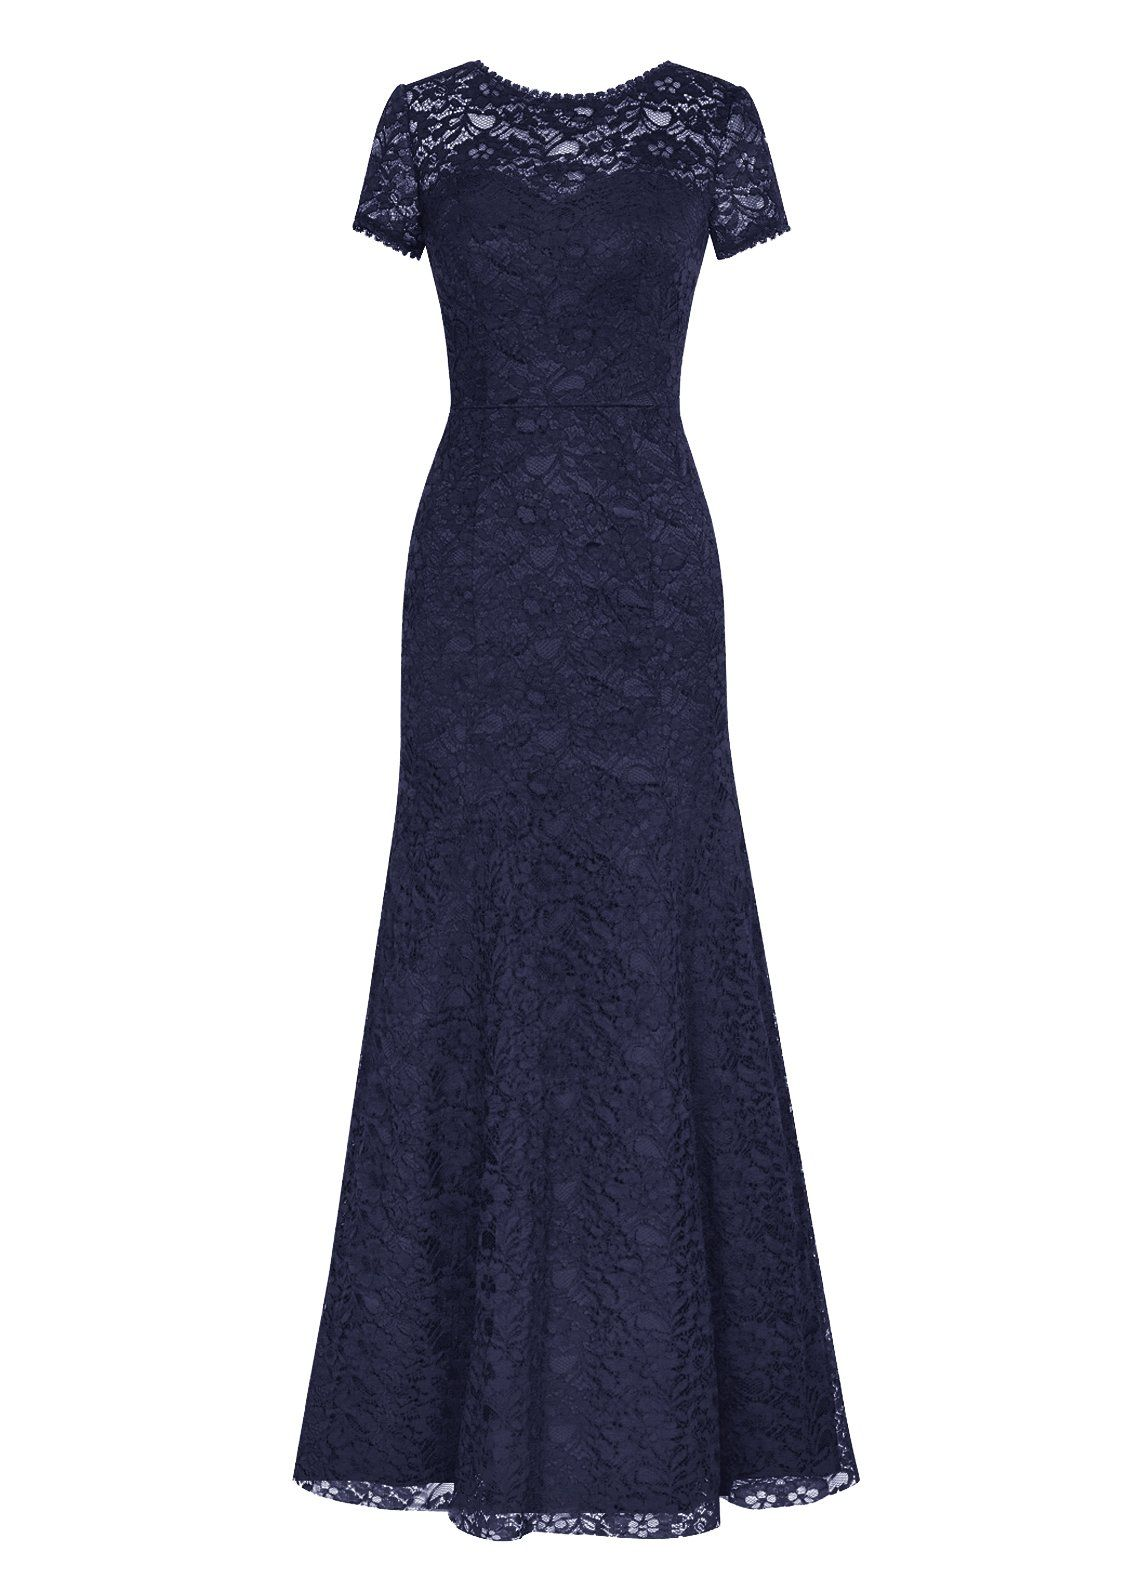 Dresstells long lace bridesmaid dress short sleeved evening gown